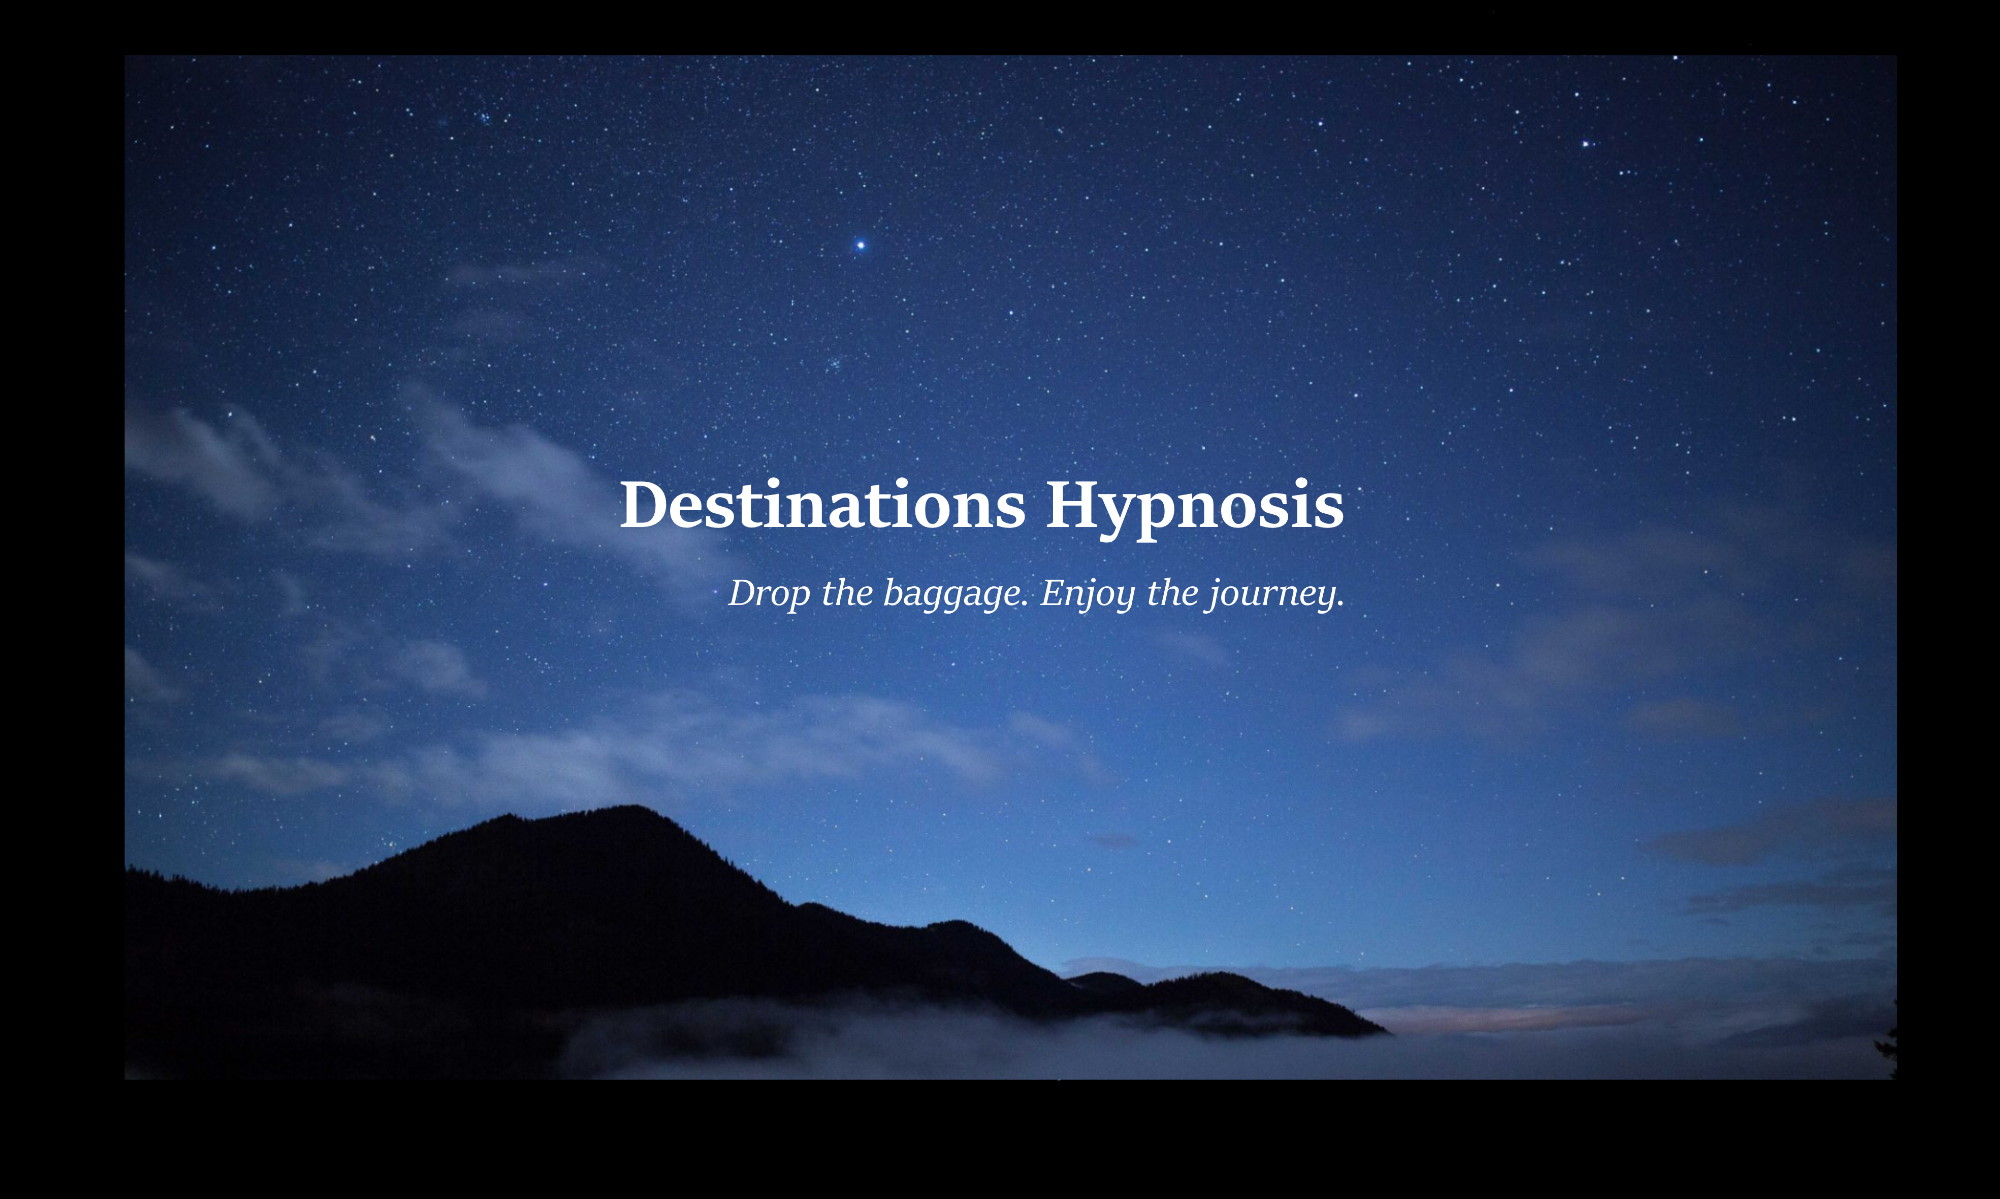 Destinations Hypnosis